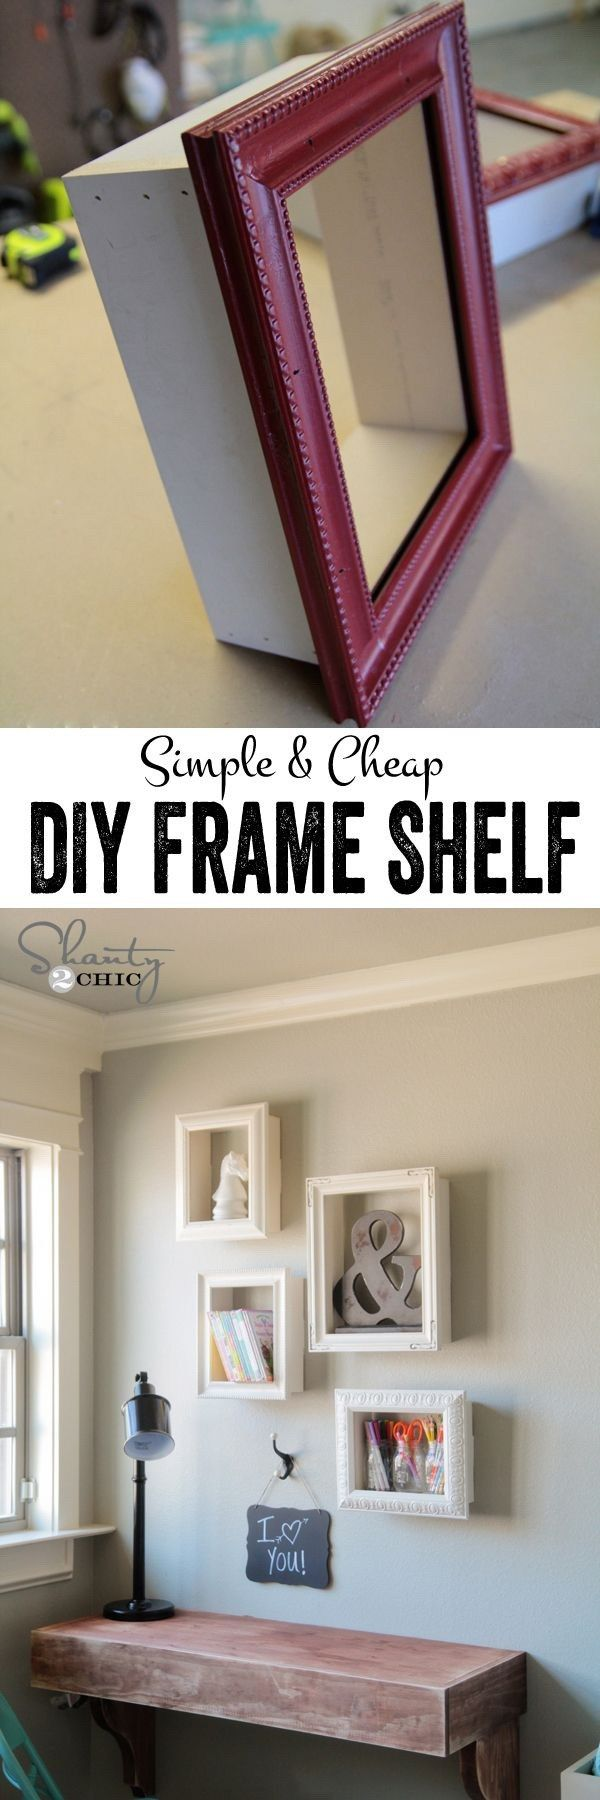 Budget Friendly DIY Home Decor Projects With Tutorials   For Creative Juice